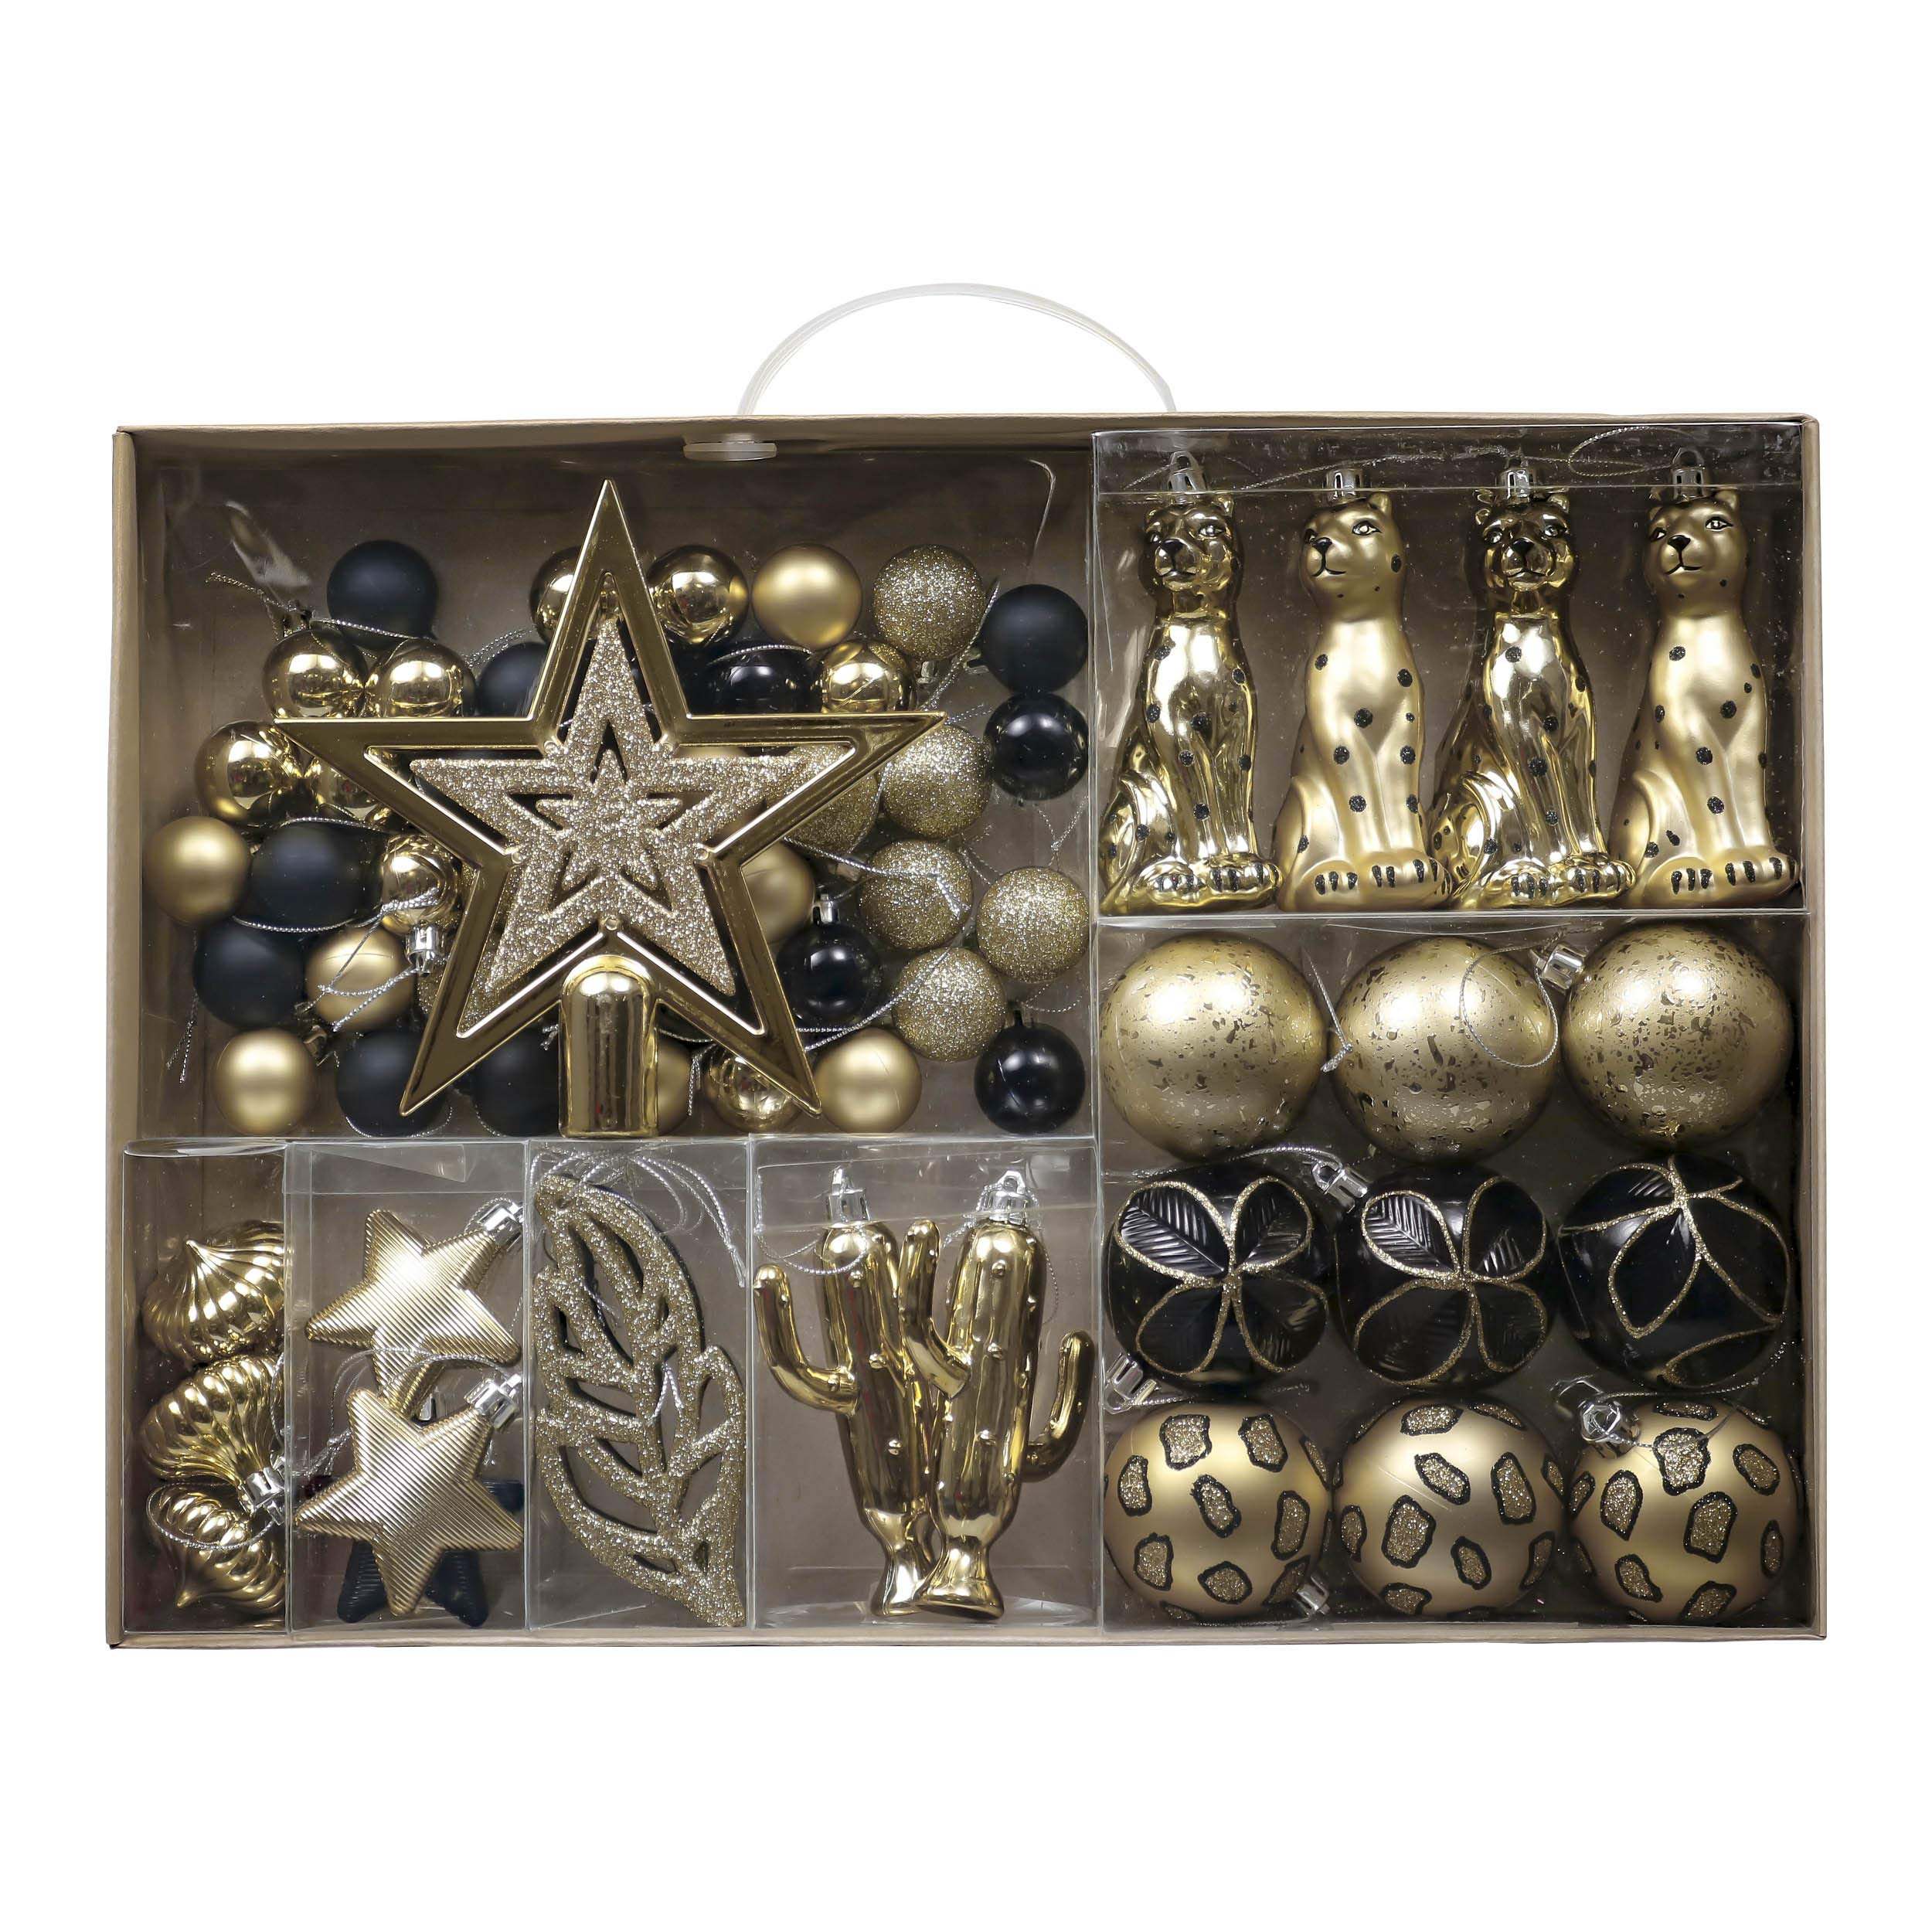 Valery Madelyn 70ct Golden Tropical Party Shatterproof Christmas Ball Ornaments Decoration Black and Gold, Christmas…